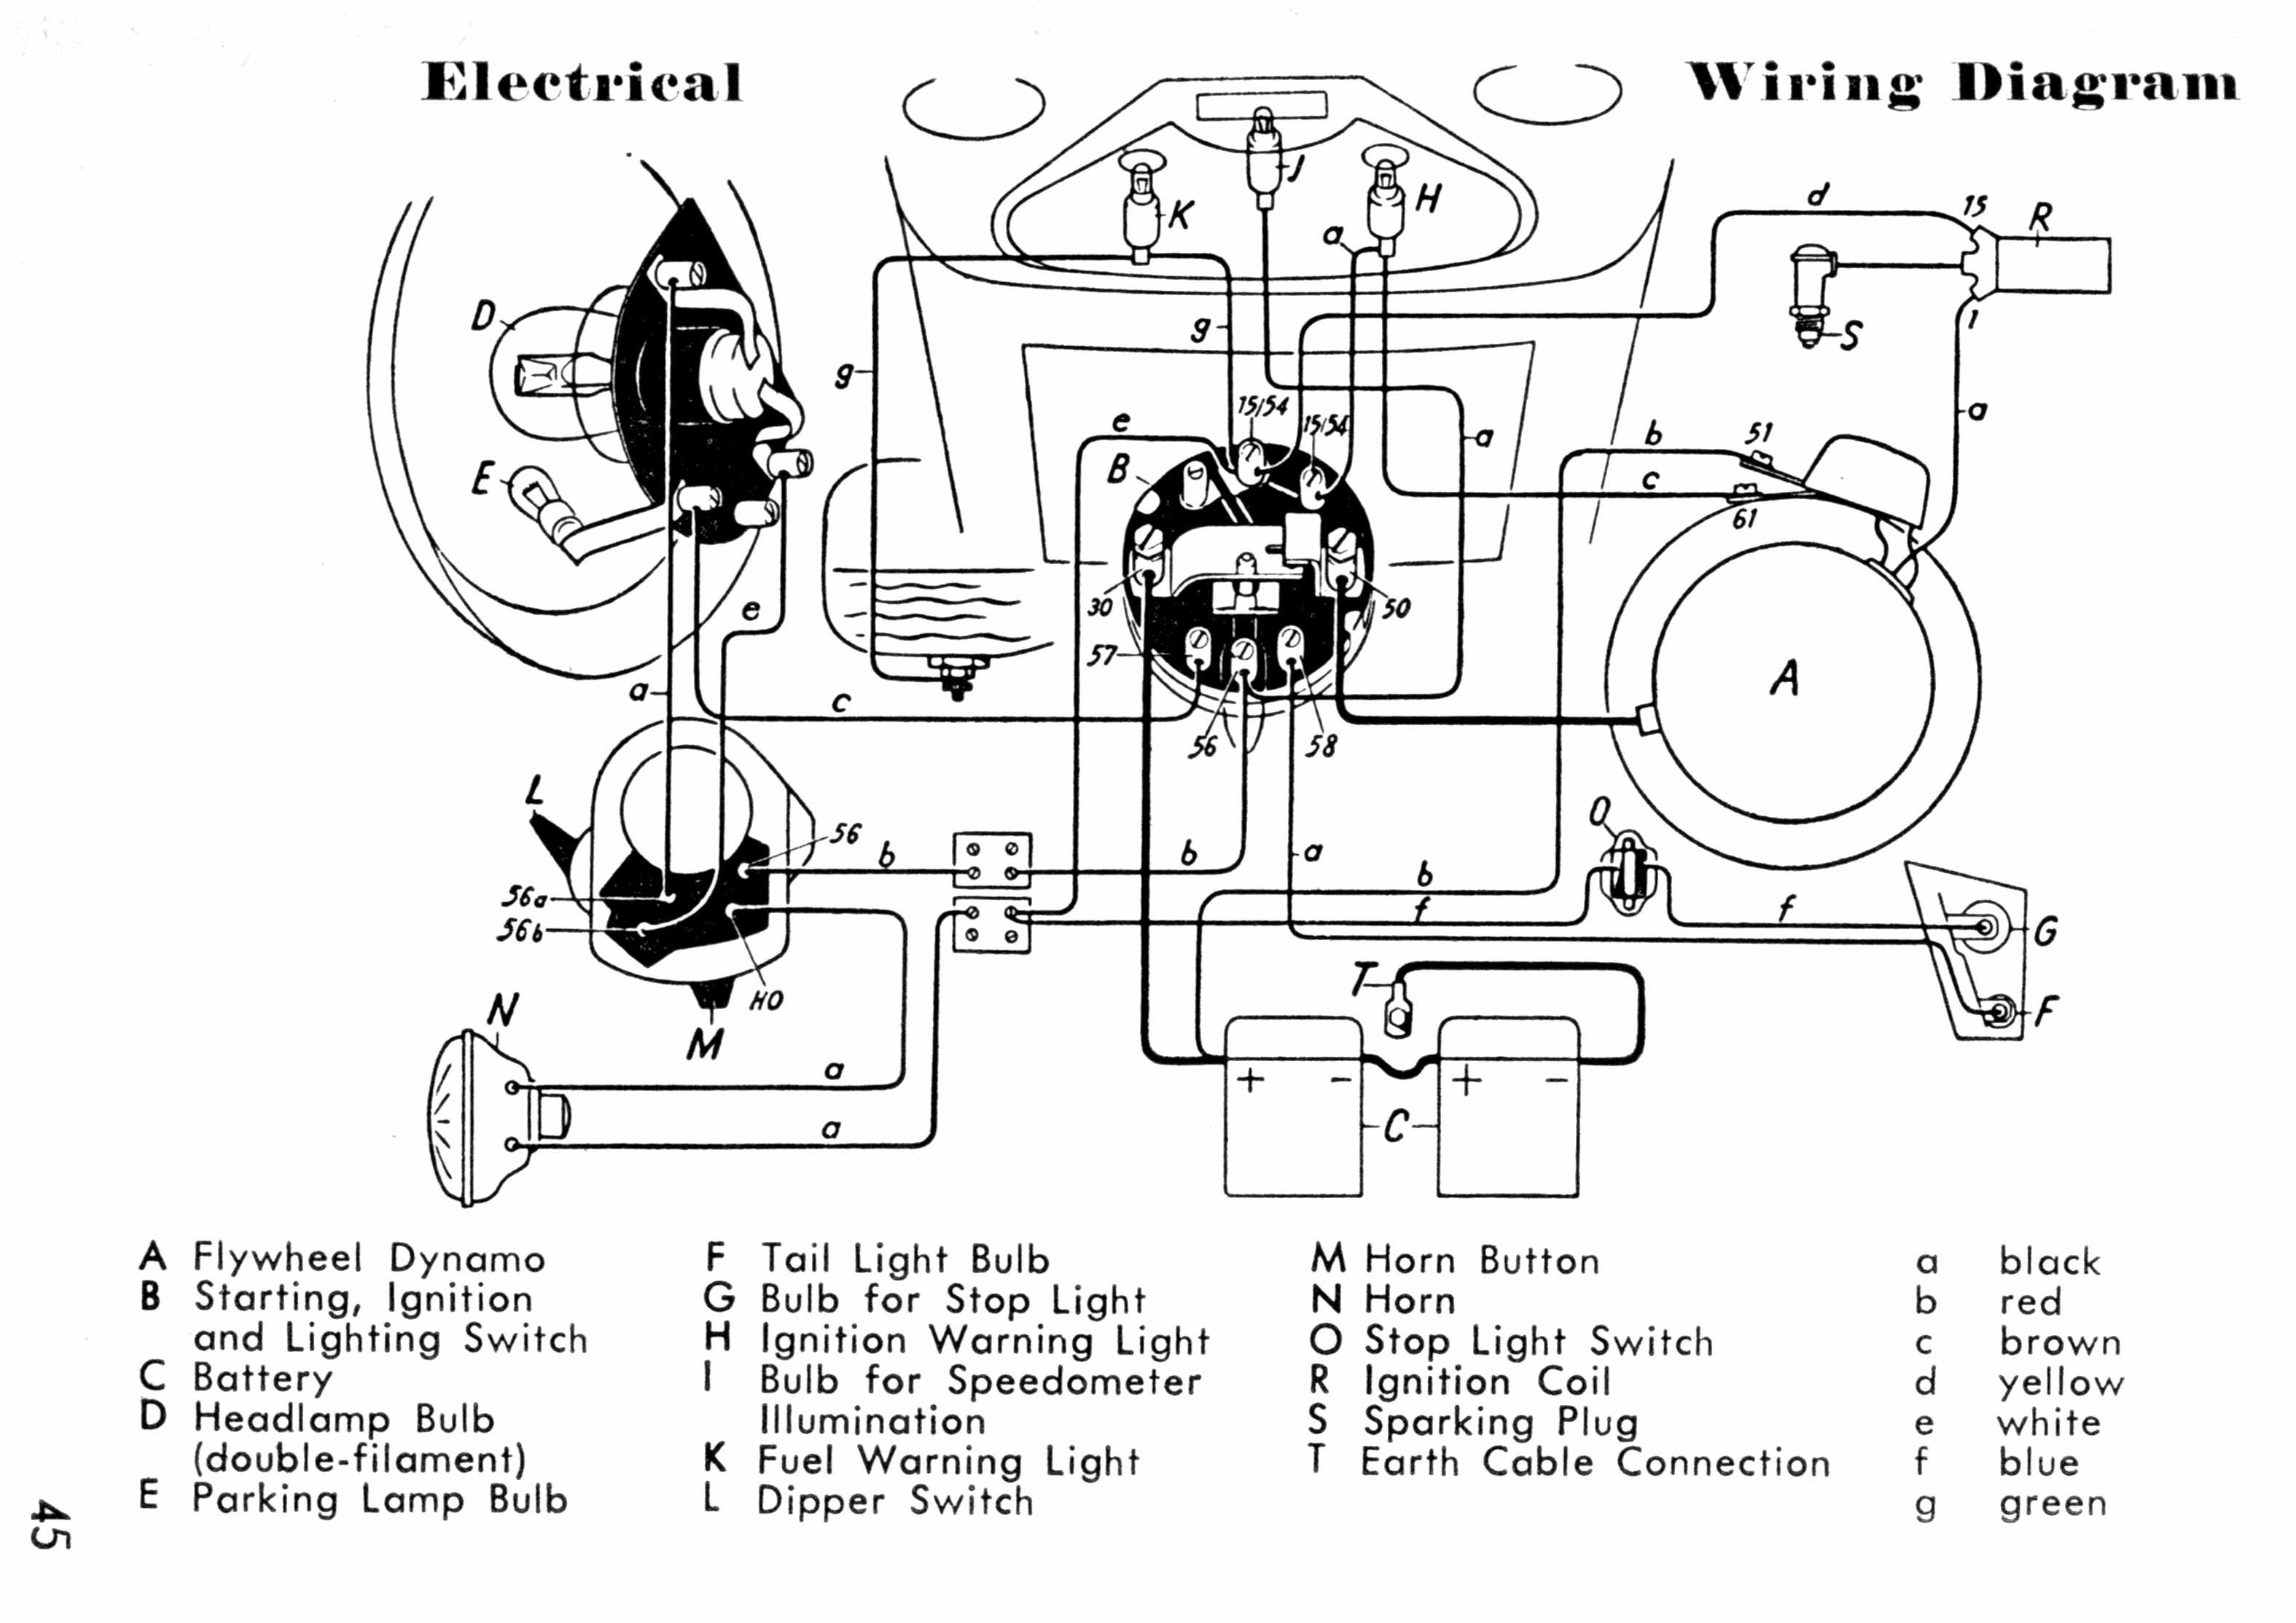 Schematic Electric Scooter Wiring Diagram Closet Pinterest Scooter Stator Wiring  Diagram Motorcycle Scooter Wiring Diagram